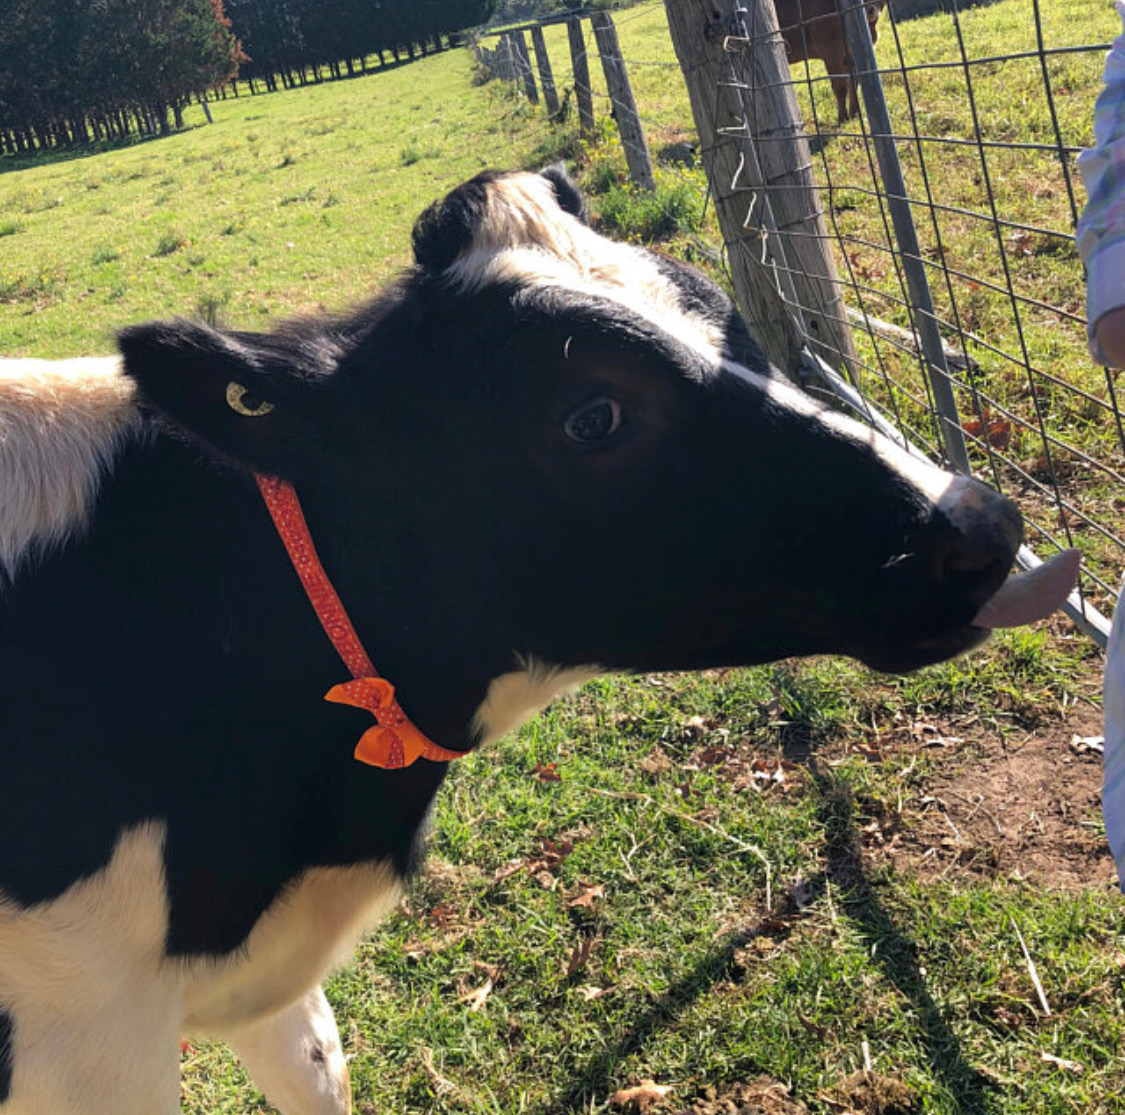 cow wearing red collar and bow tie